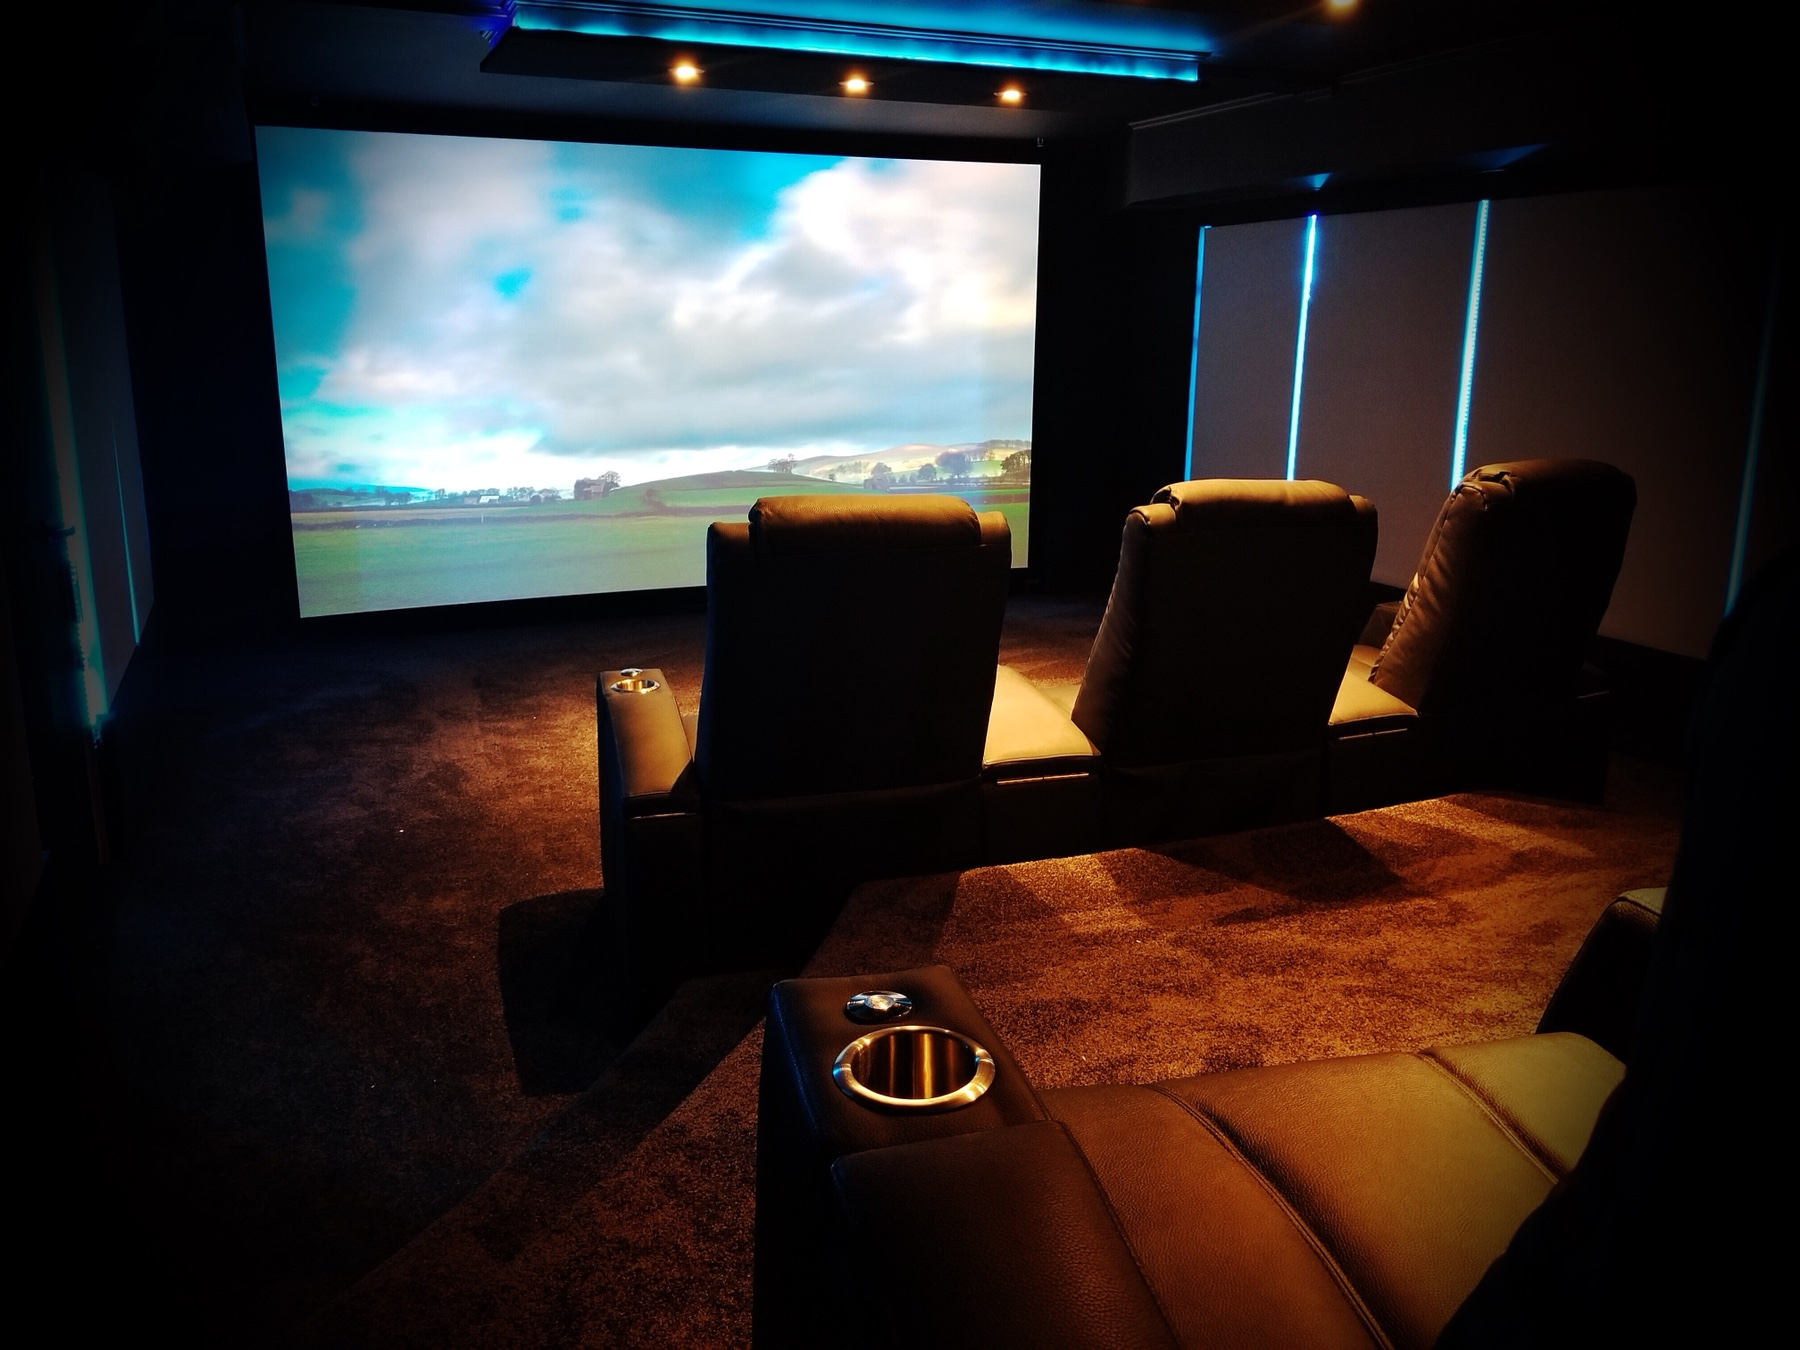 the beast unleashed avs forum home theater discussions and reviews rh avsforum com